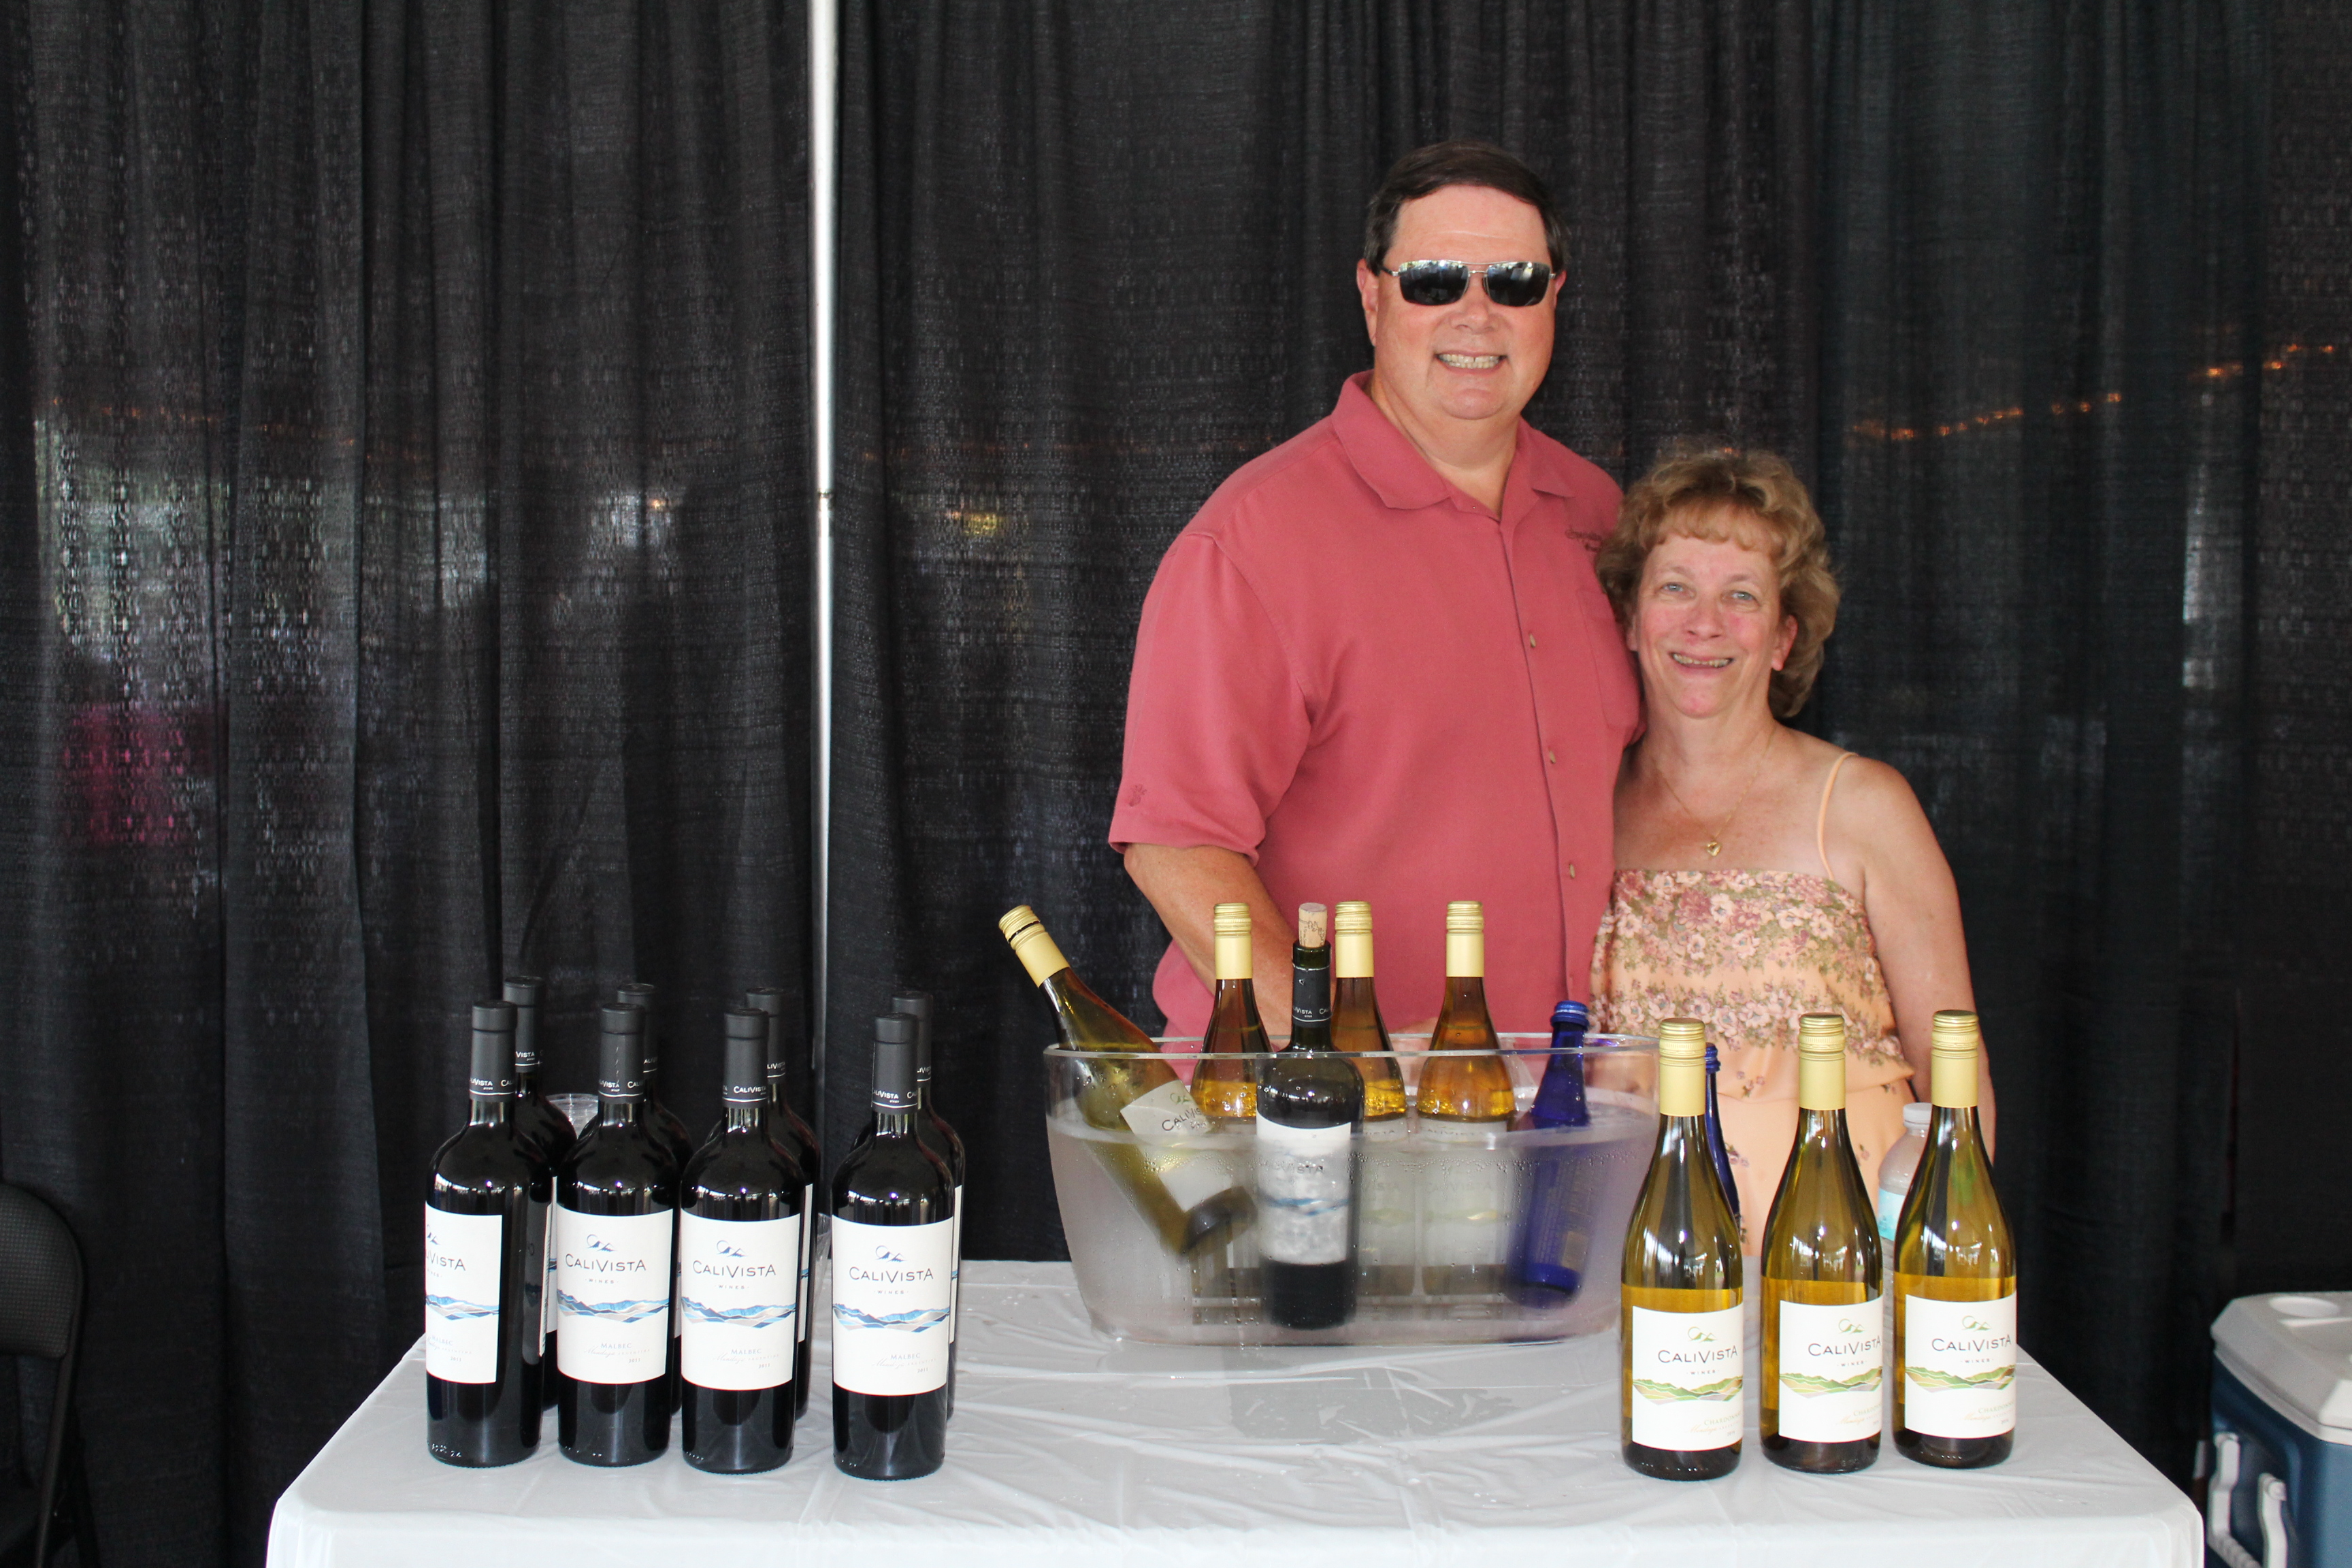 Specialty Wines & More at the Saratoga Dog & Pony Show to benefit AIM Services, Inc.